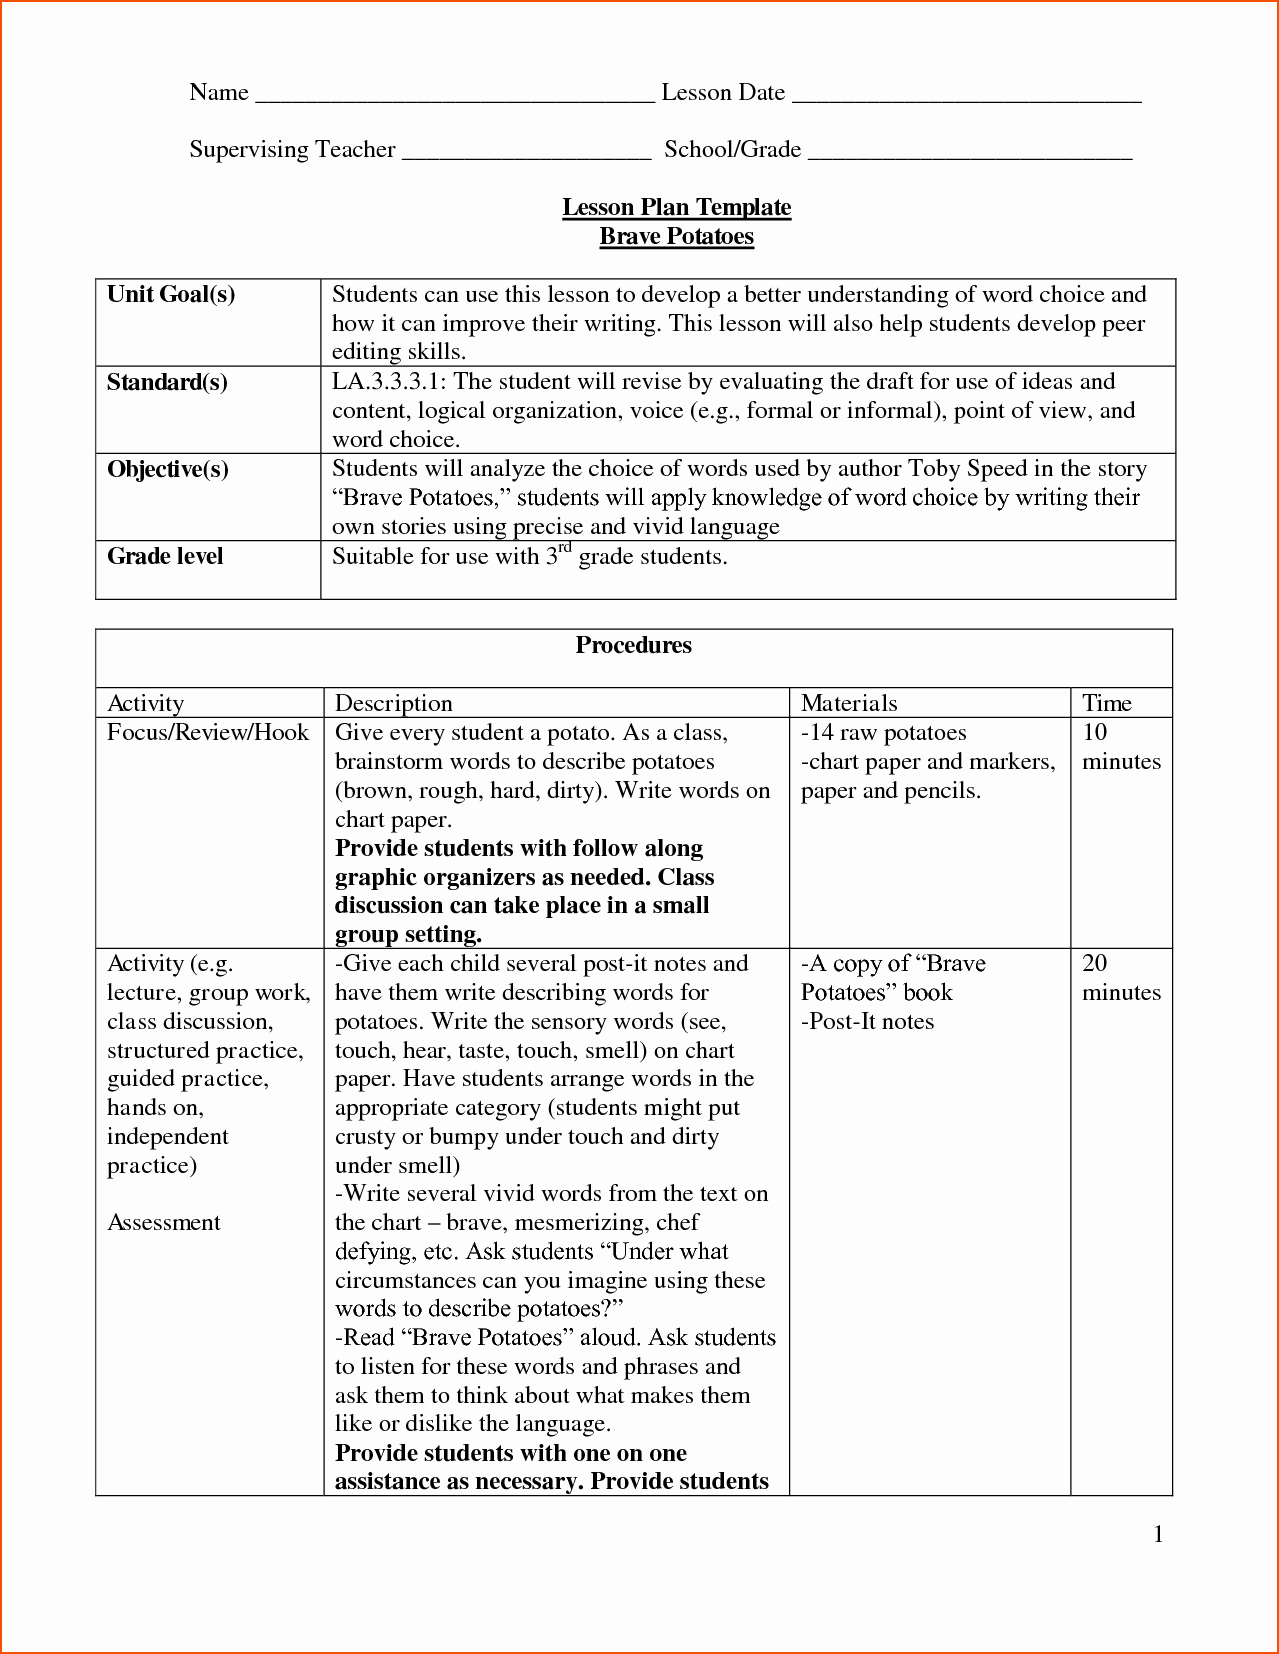 Lesson Plan Template Doc Elegant 8 Lesson Plan Template Doc Bookletemplate